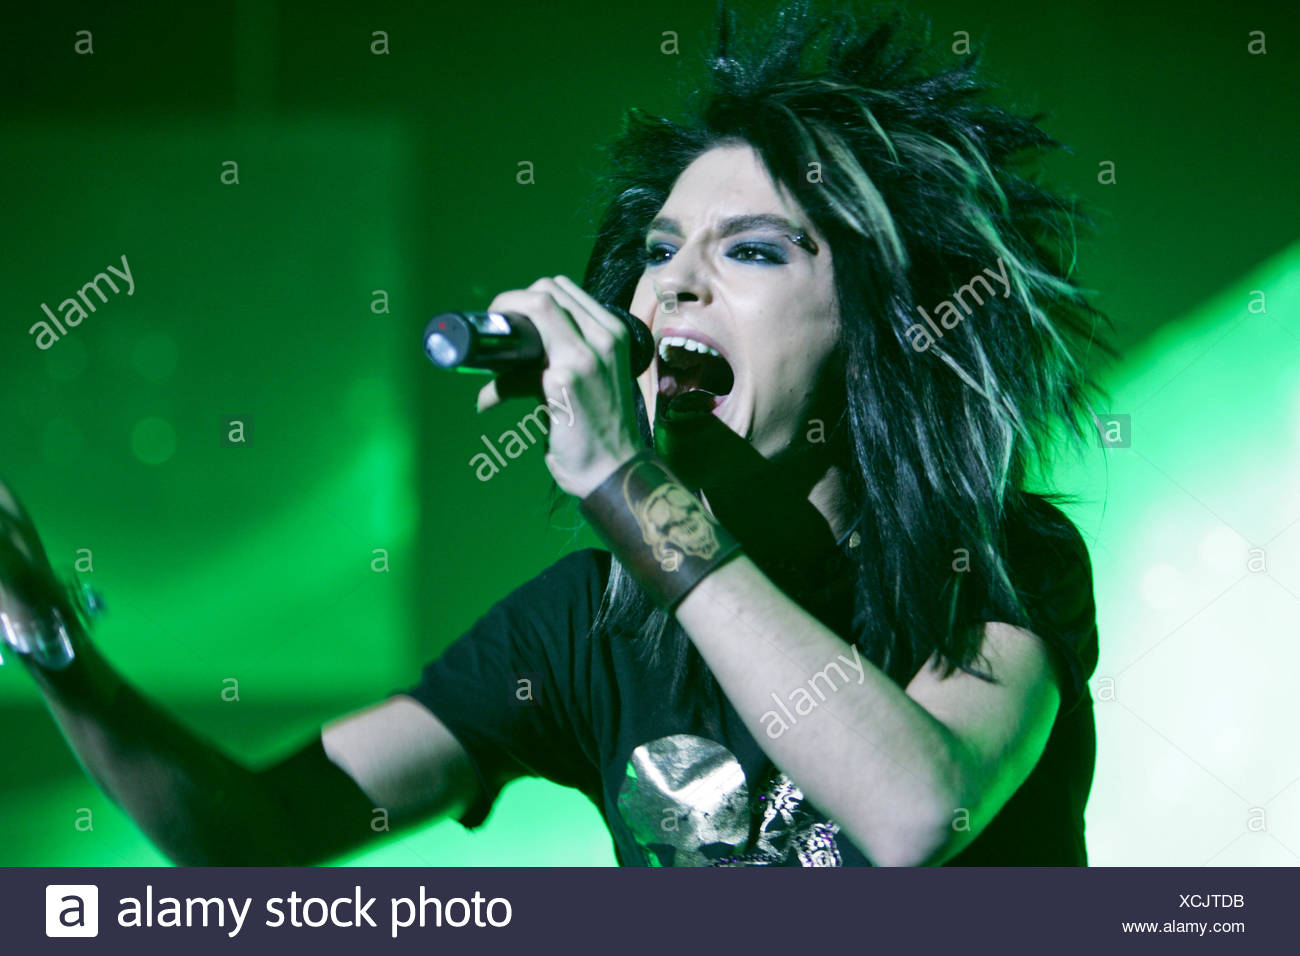 Bill Kaulitz, singer and frontman of the German rock and pop band 'Tokio Hotel', playing live at the Hallenstadion in Oerlikon - Stock Image